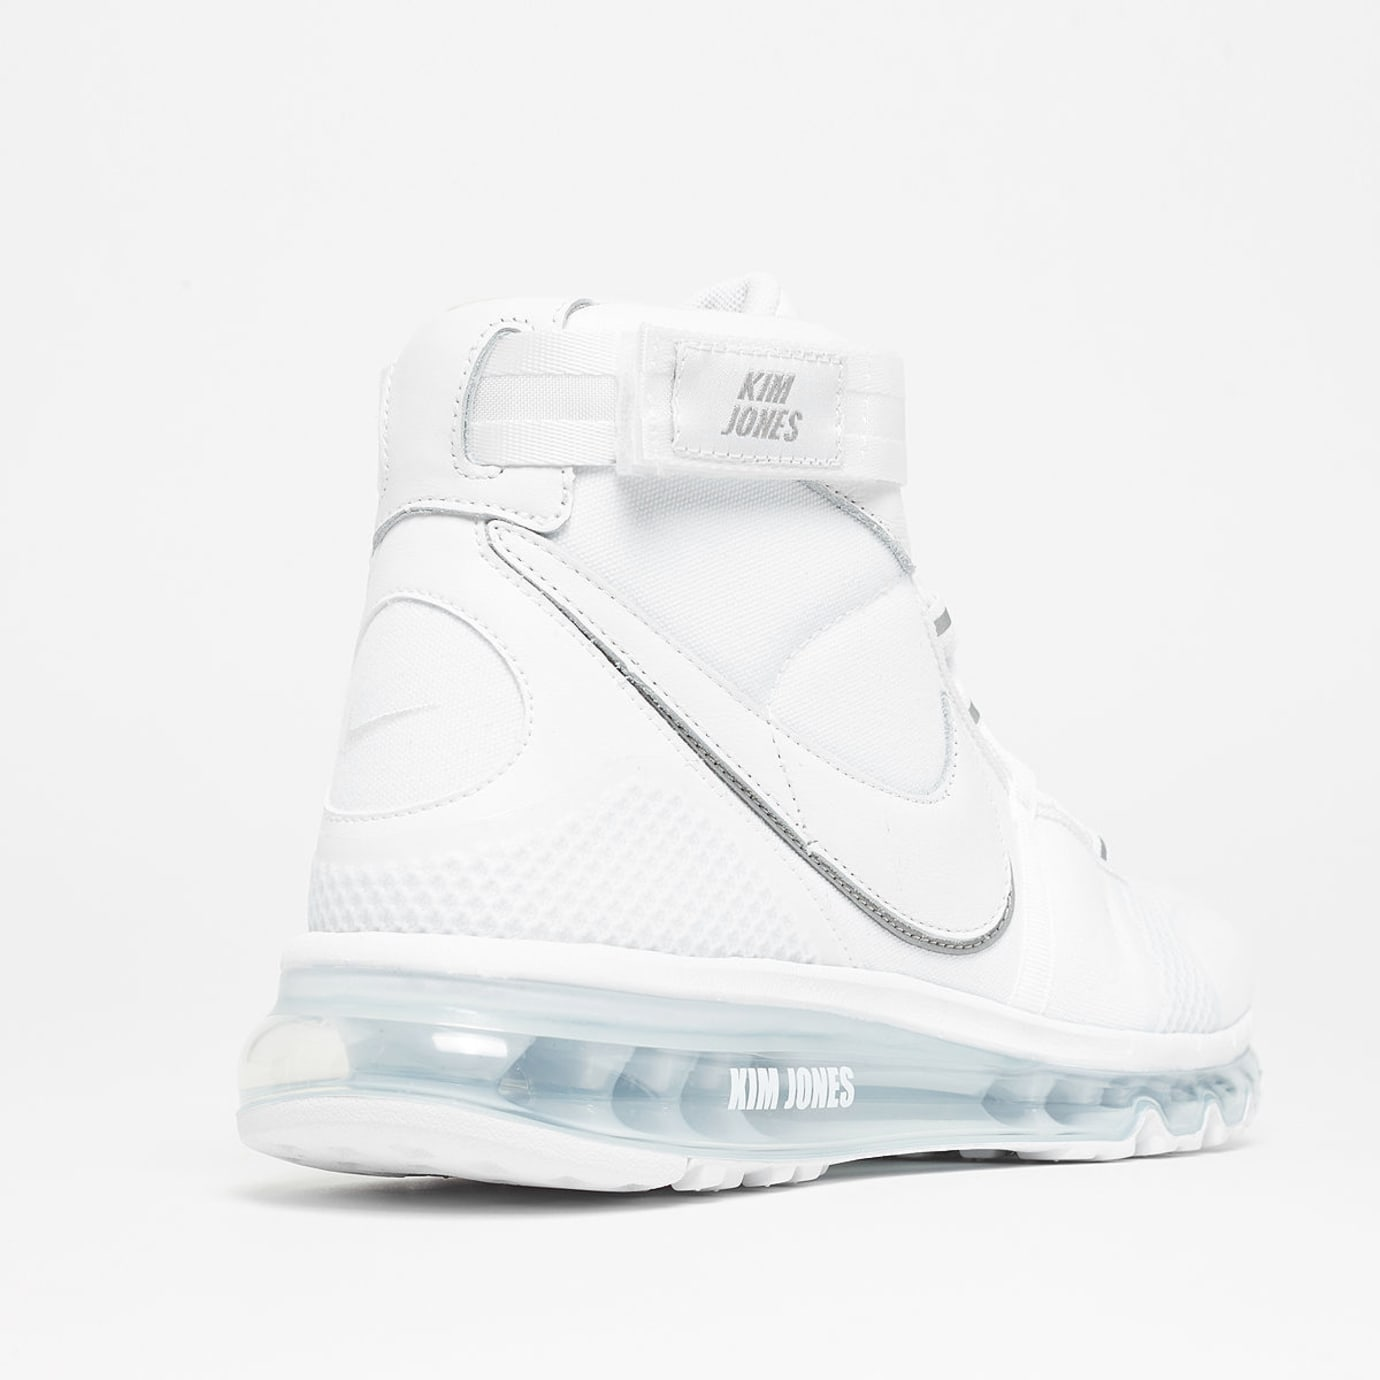 Kim Jones x NikeLab Air Max 360 Hi 'White' AO2313 100 'Black